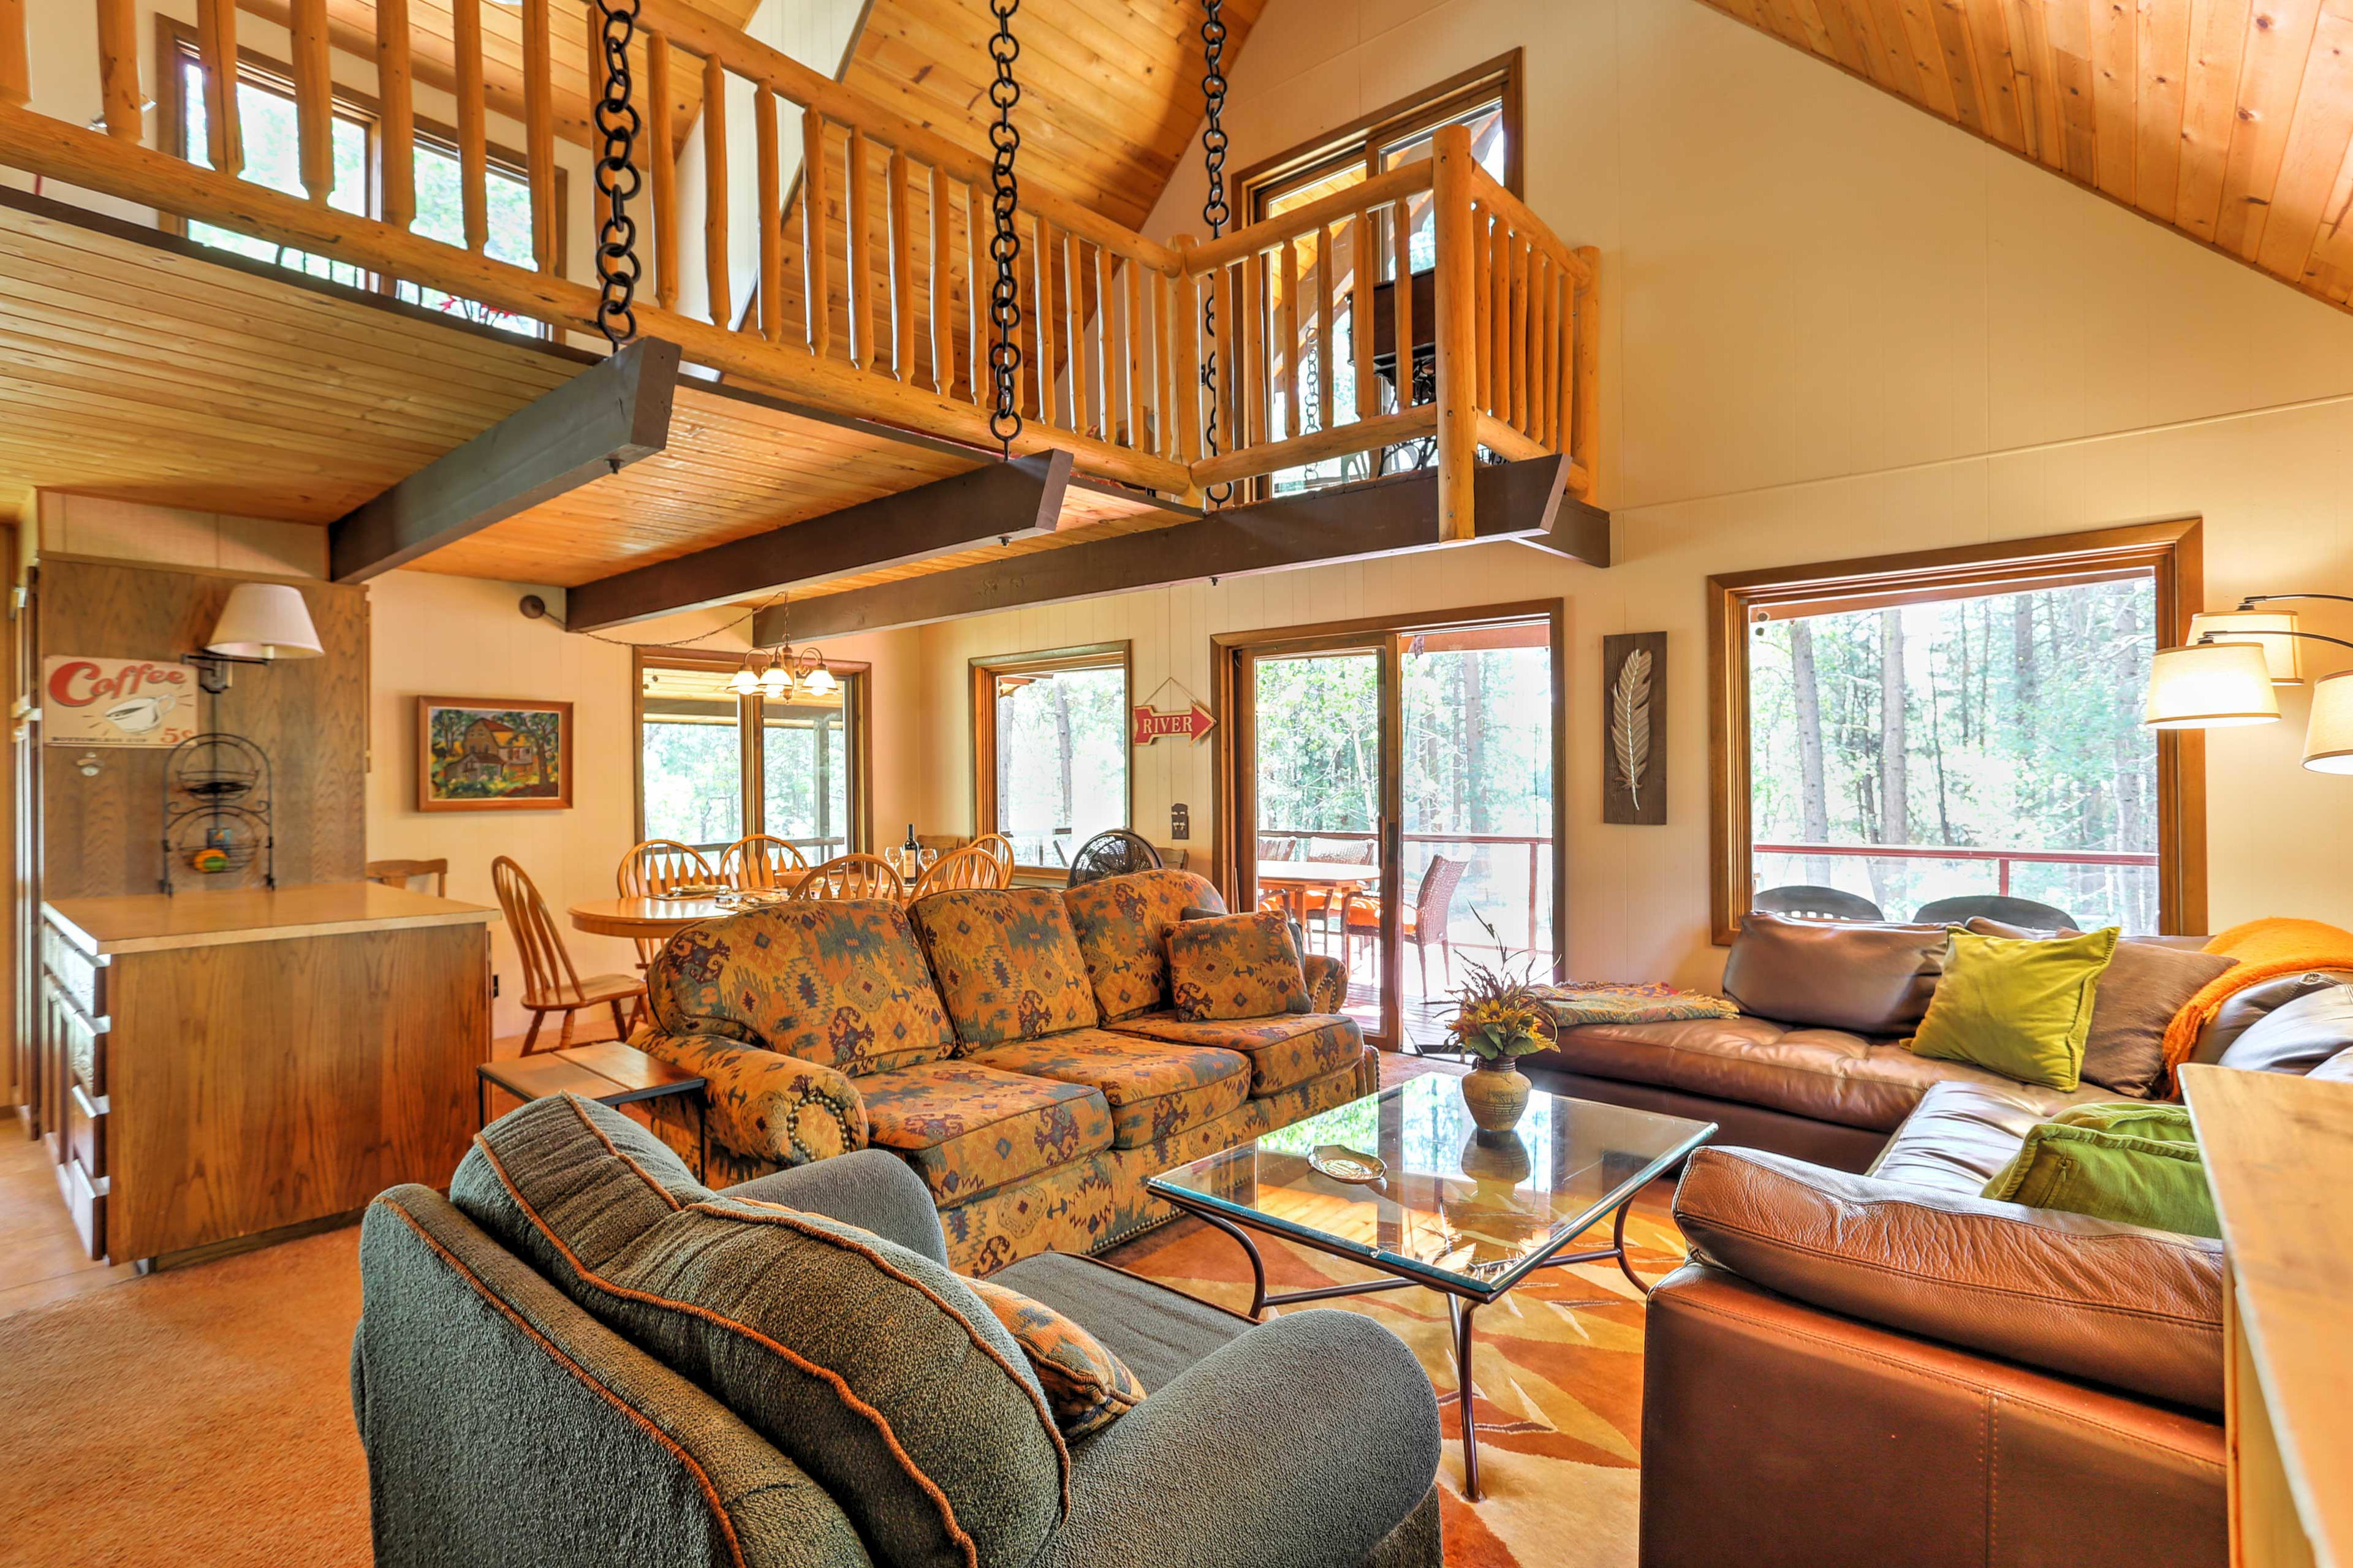 The spacious interior features vaulted, knotty pine ceilings and bark beams.